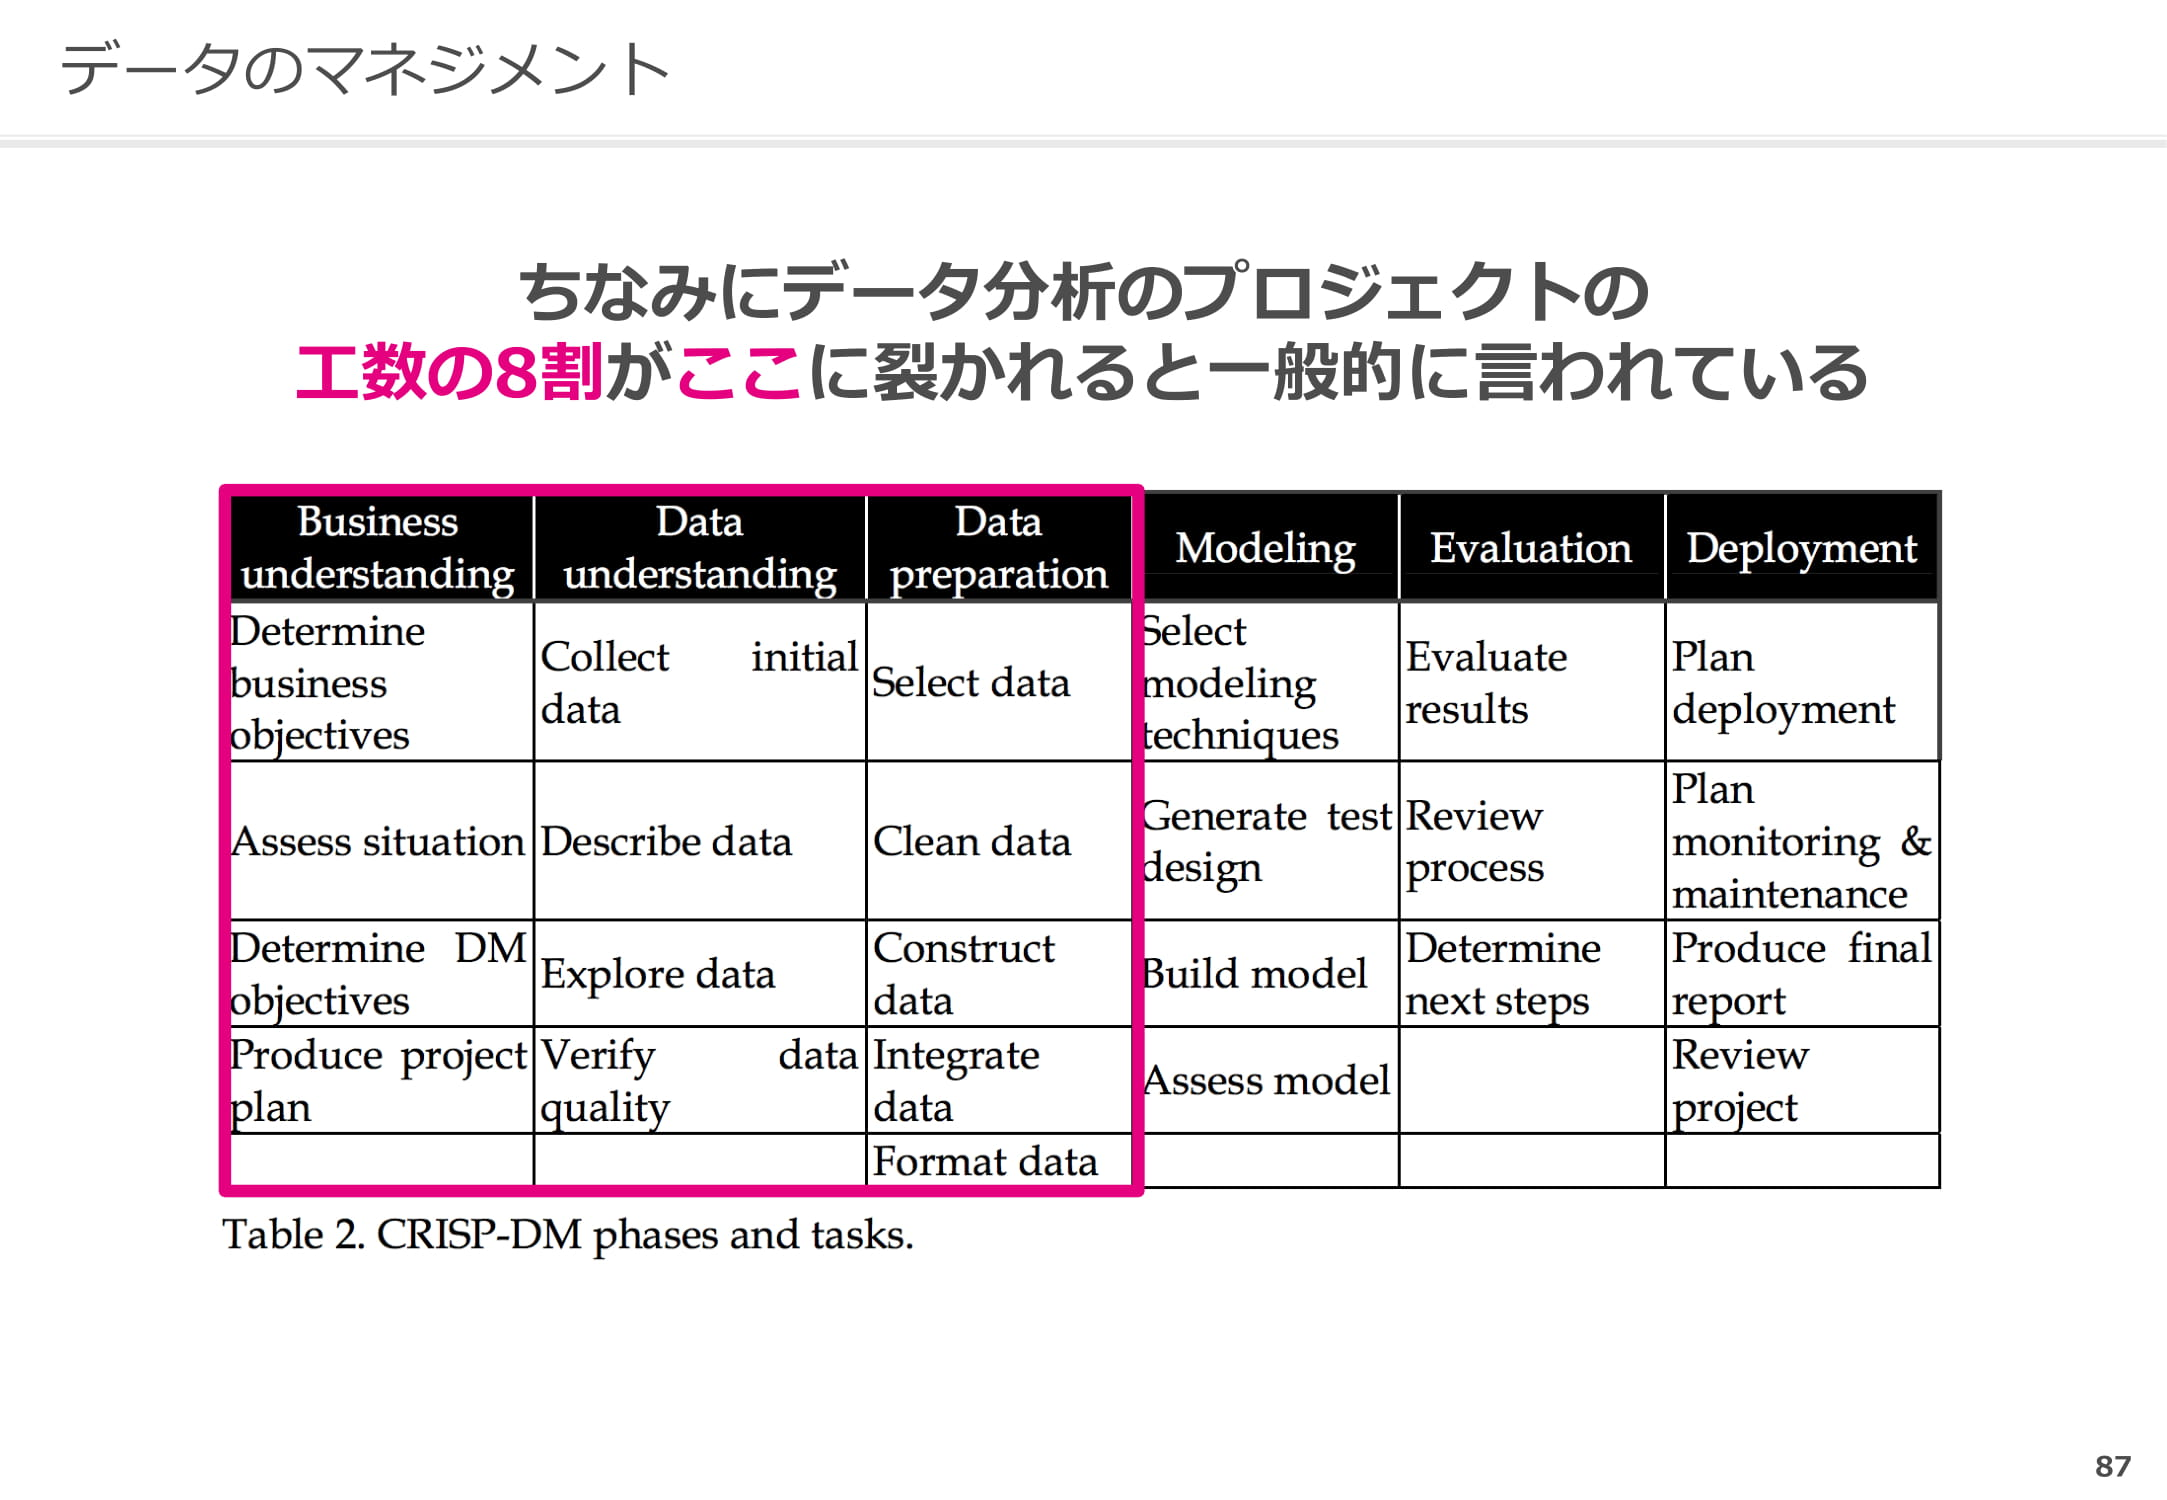 Business understandingsからData preparationが工数の8割